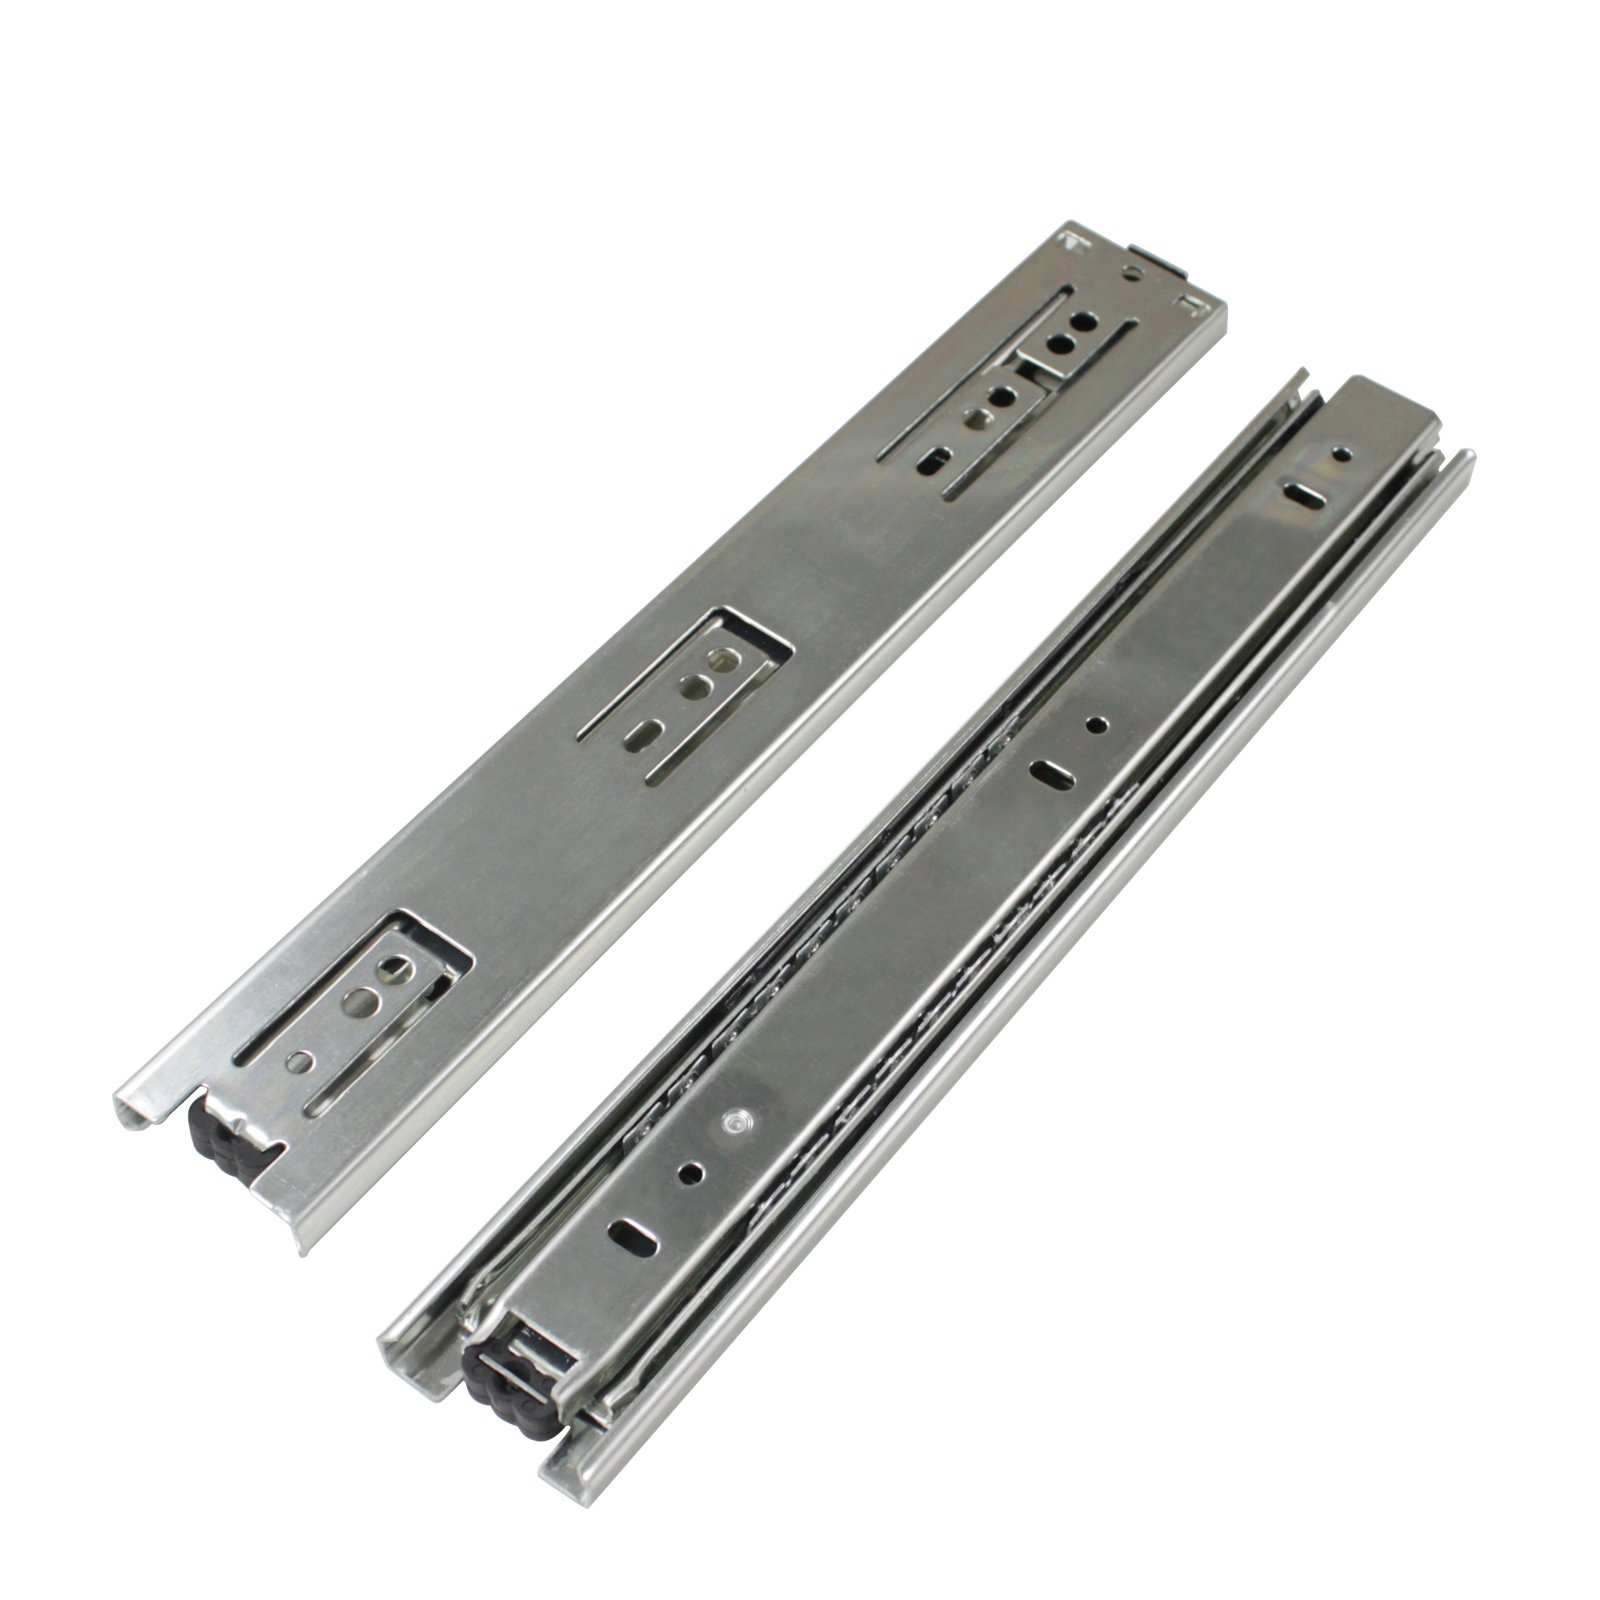 2 Pairs 22 inch Full Extension Side Mount Drawer Slides 3-Folds Ball Bearing Heavy Duty 100 lb Thickness:1.01.01.2mm by Probrico (Image #7)